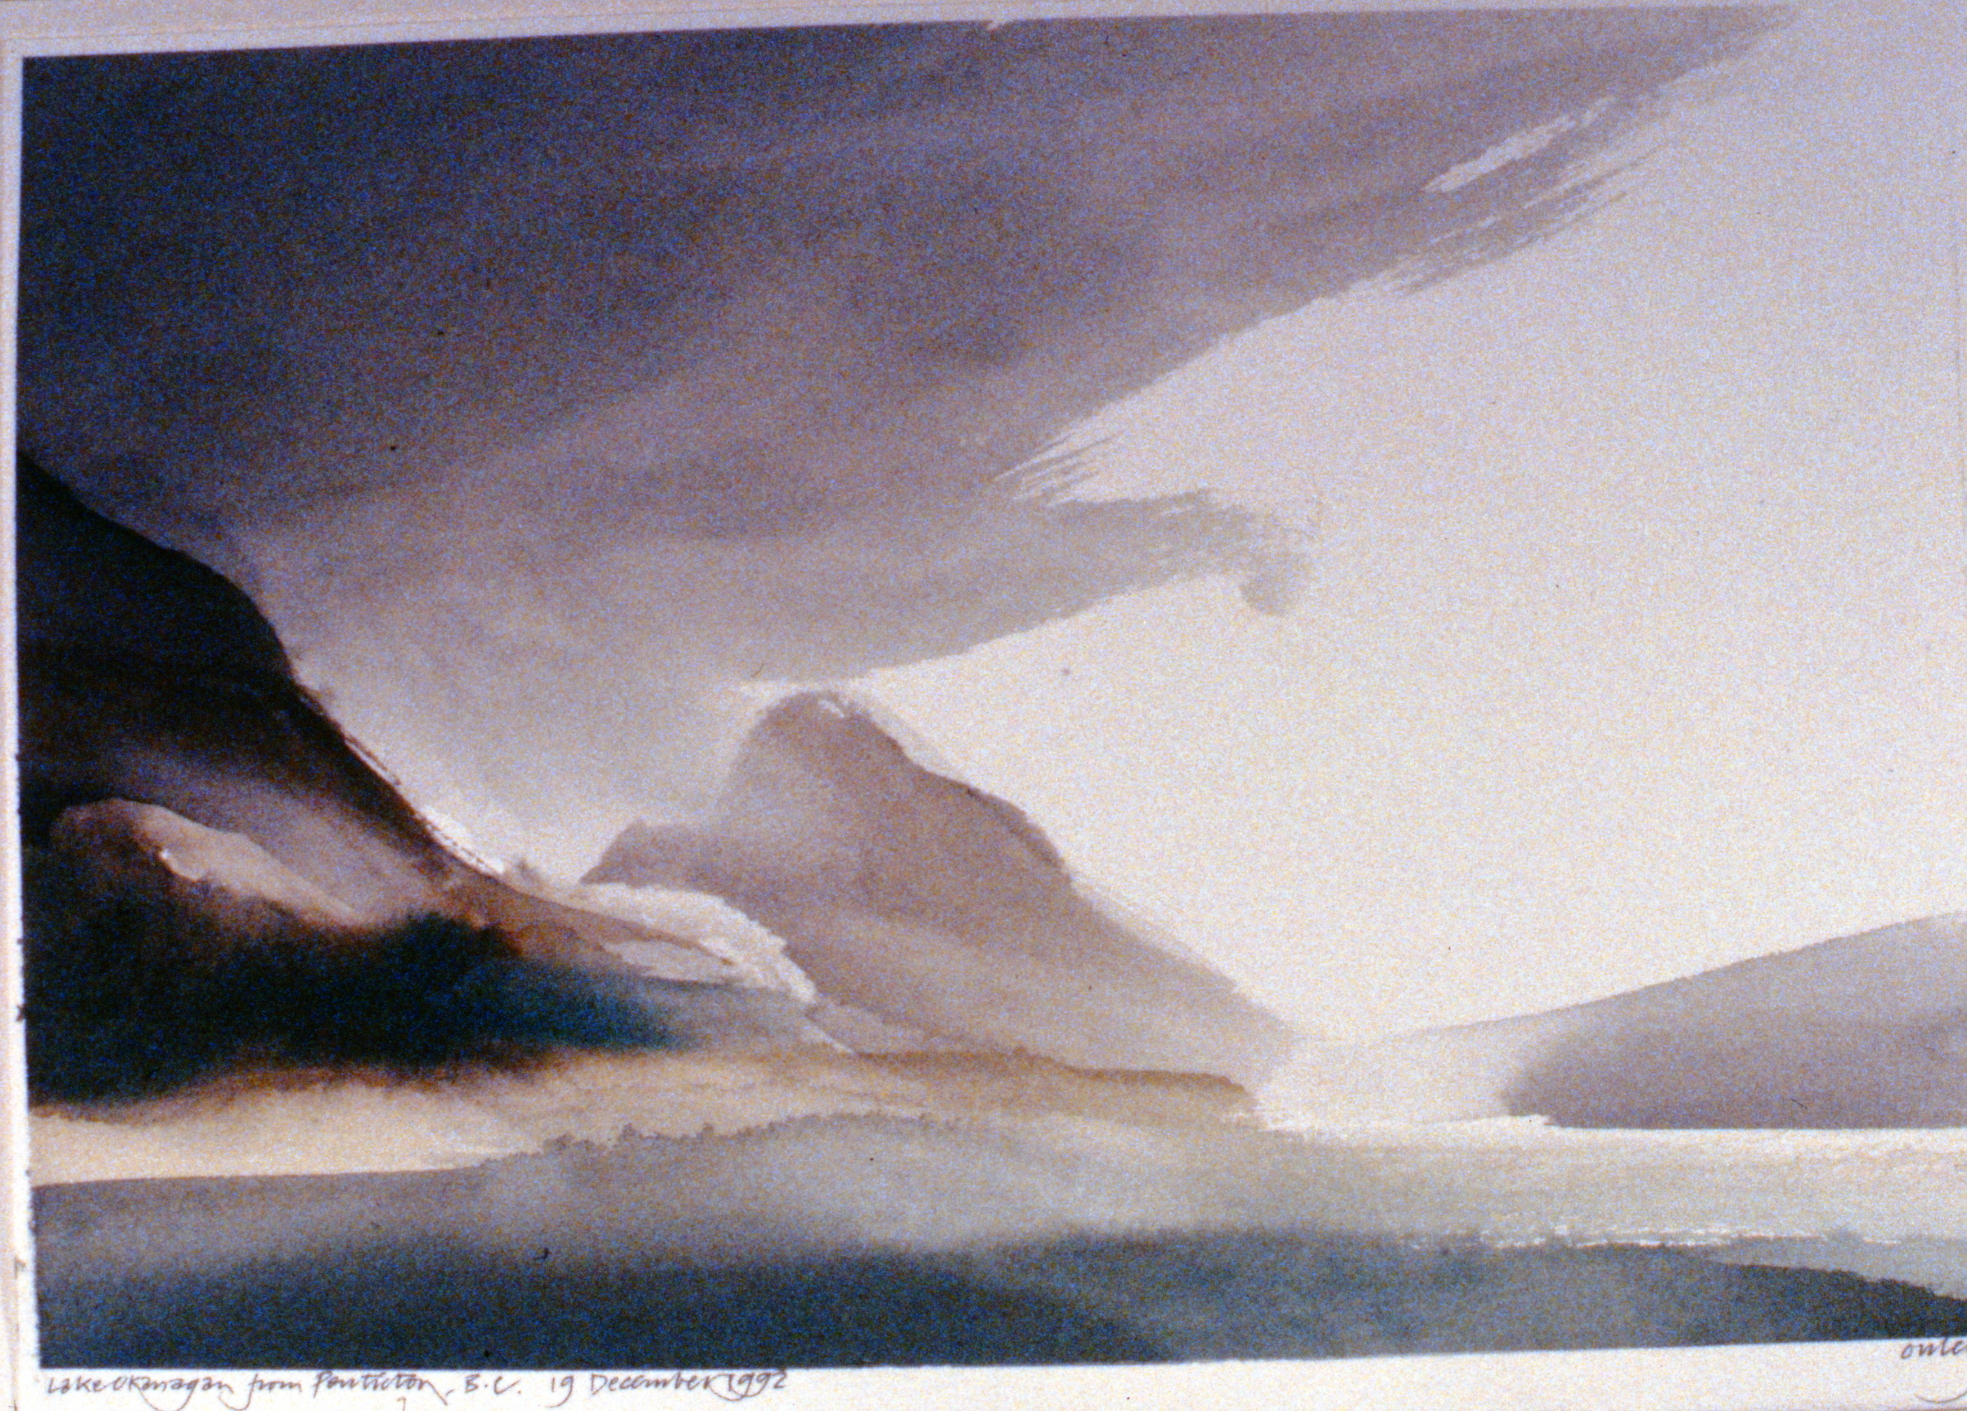 Lake Okanagan from Penticton , December 19th, 1992, Toni Onley, watercolour on paper, 1994.15.02. Gift of the artist.